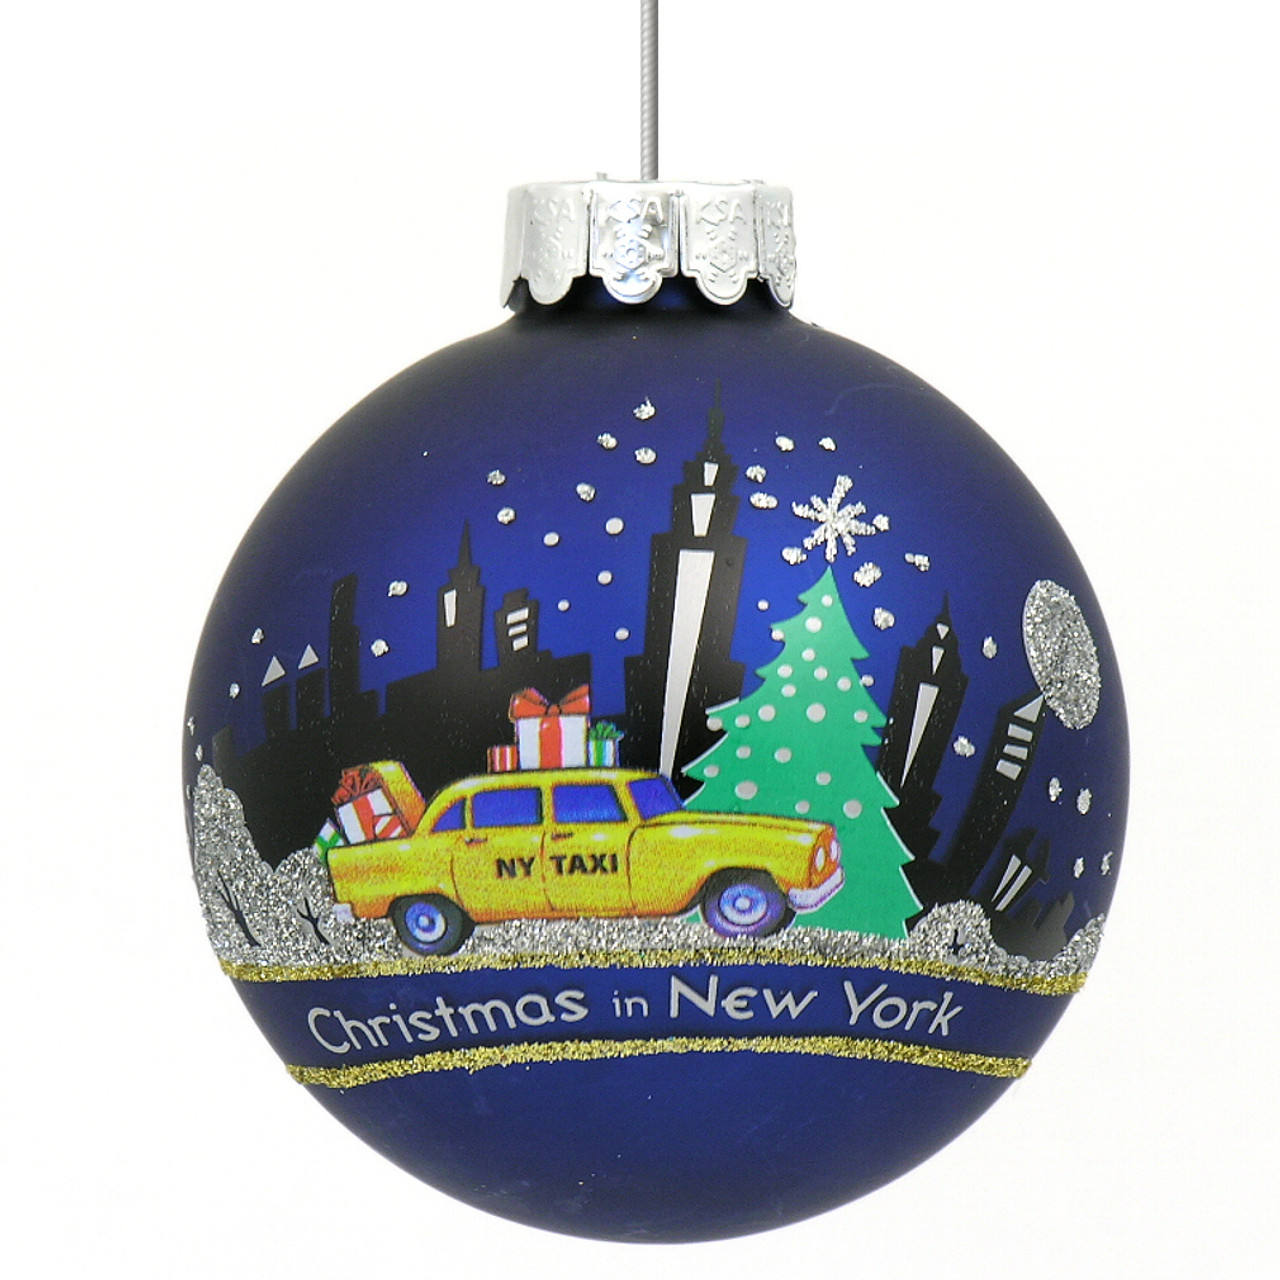 NYC Taxi and Christmas Tree Ornament New York City Souvenir Travel Gift